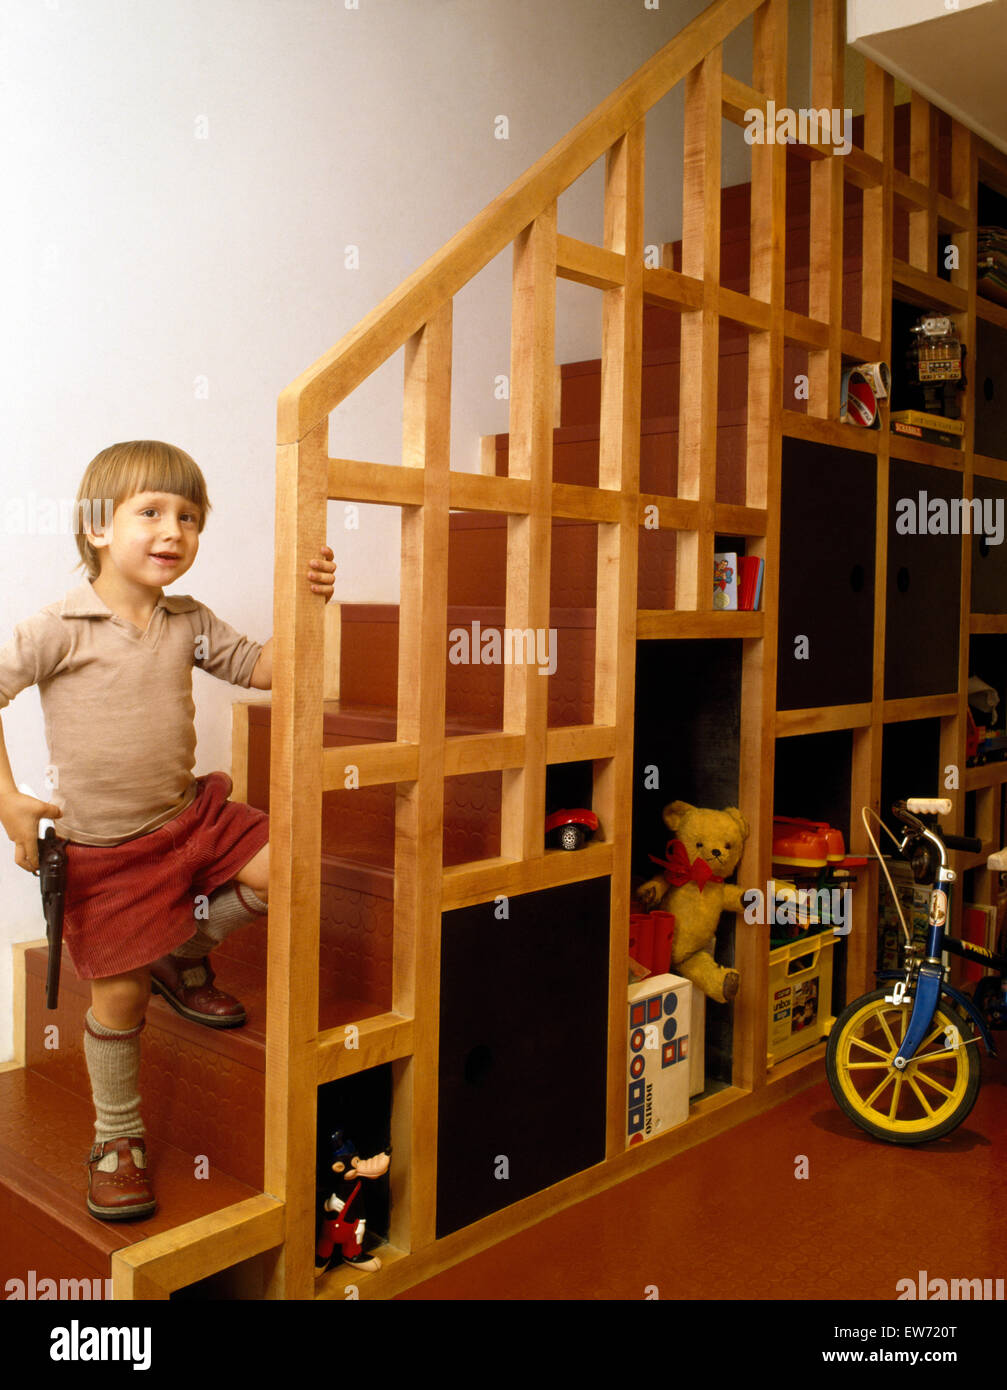 Small Boy Standing On Staircase With Under Stair Storage In A Stock Photo Alamy